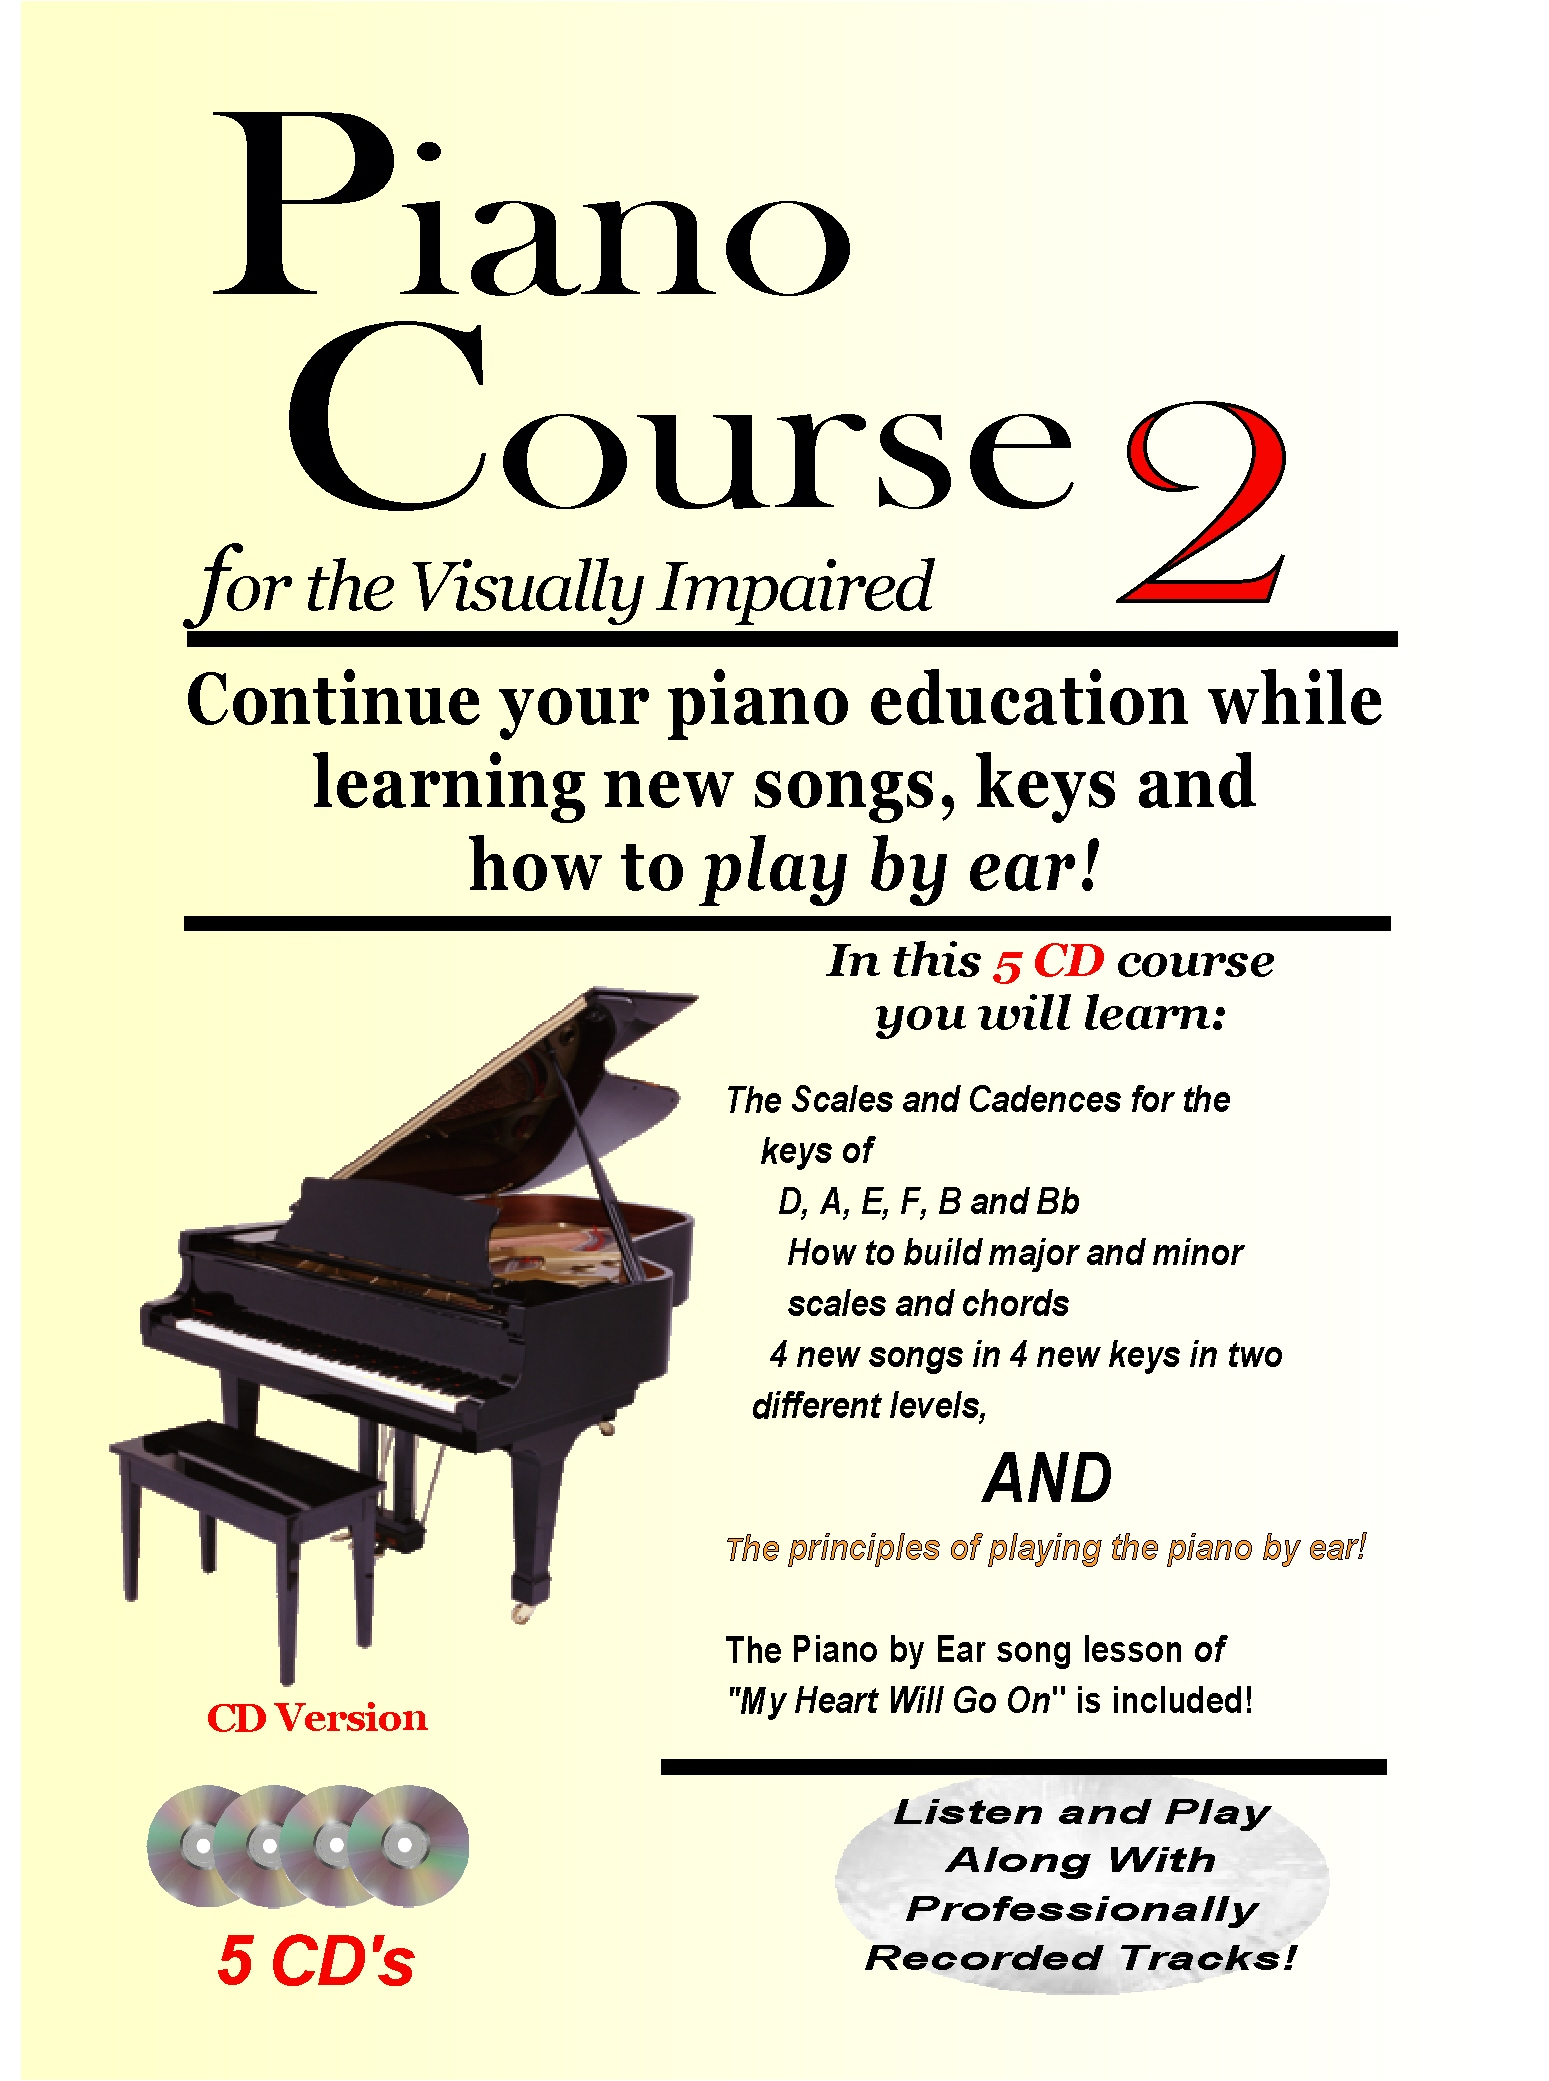 Piano Course 2 for the Visually Impaired